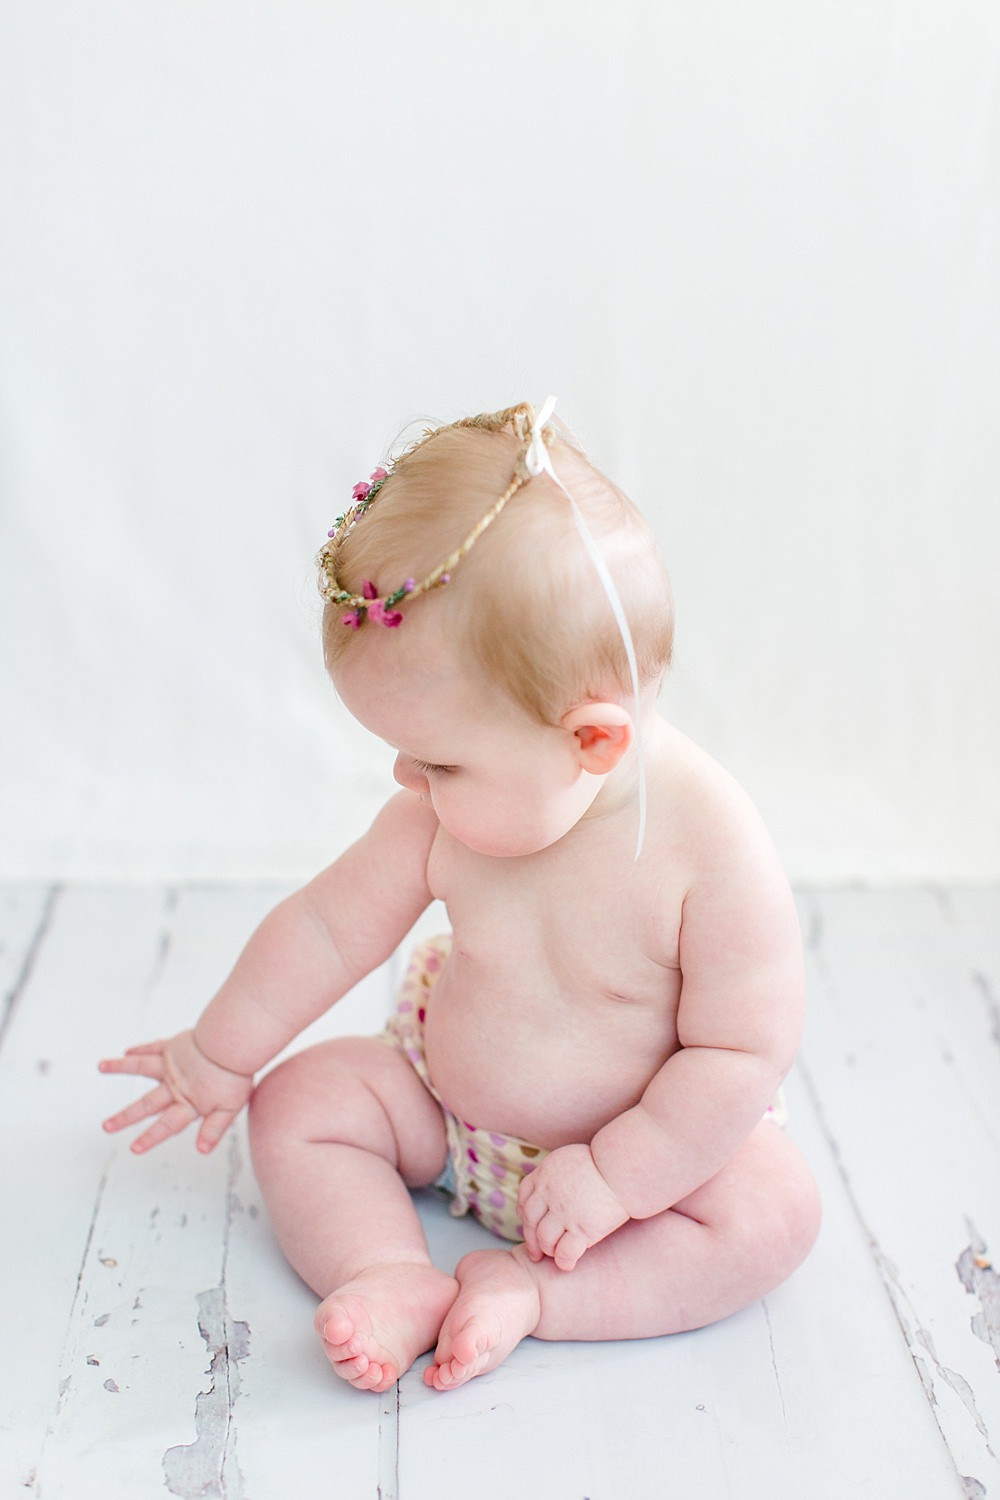 Babies,Baby Photographers Glasgow,Kids,Portrait Photographers Glasgow,The Gibsons,baby photographer glasgow,baby photos glasgow,baby portraits glasgow,glasgow baby and family photographers,glasgow baby photographers,sitter sessions glasgow,